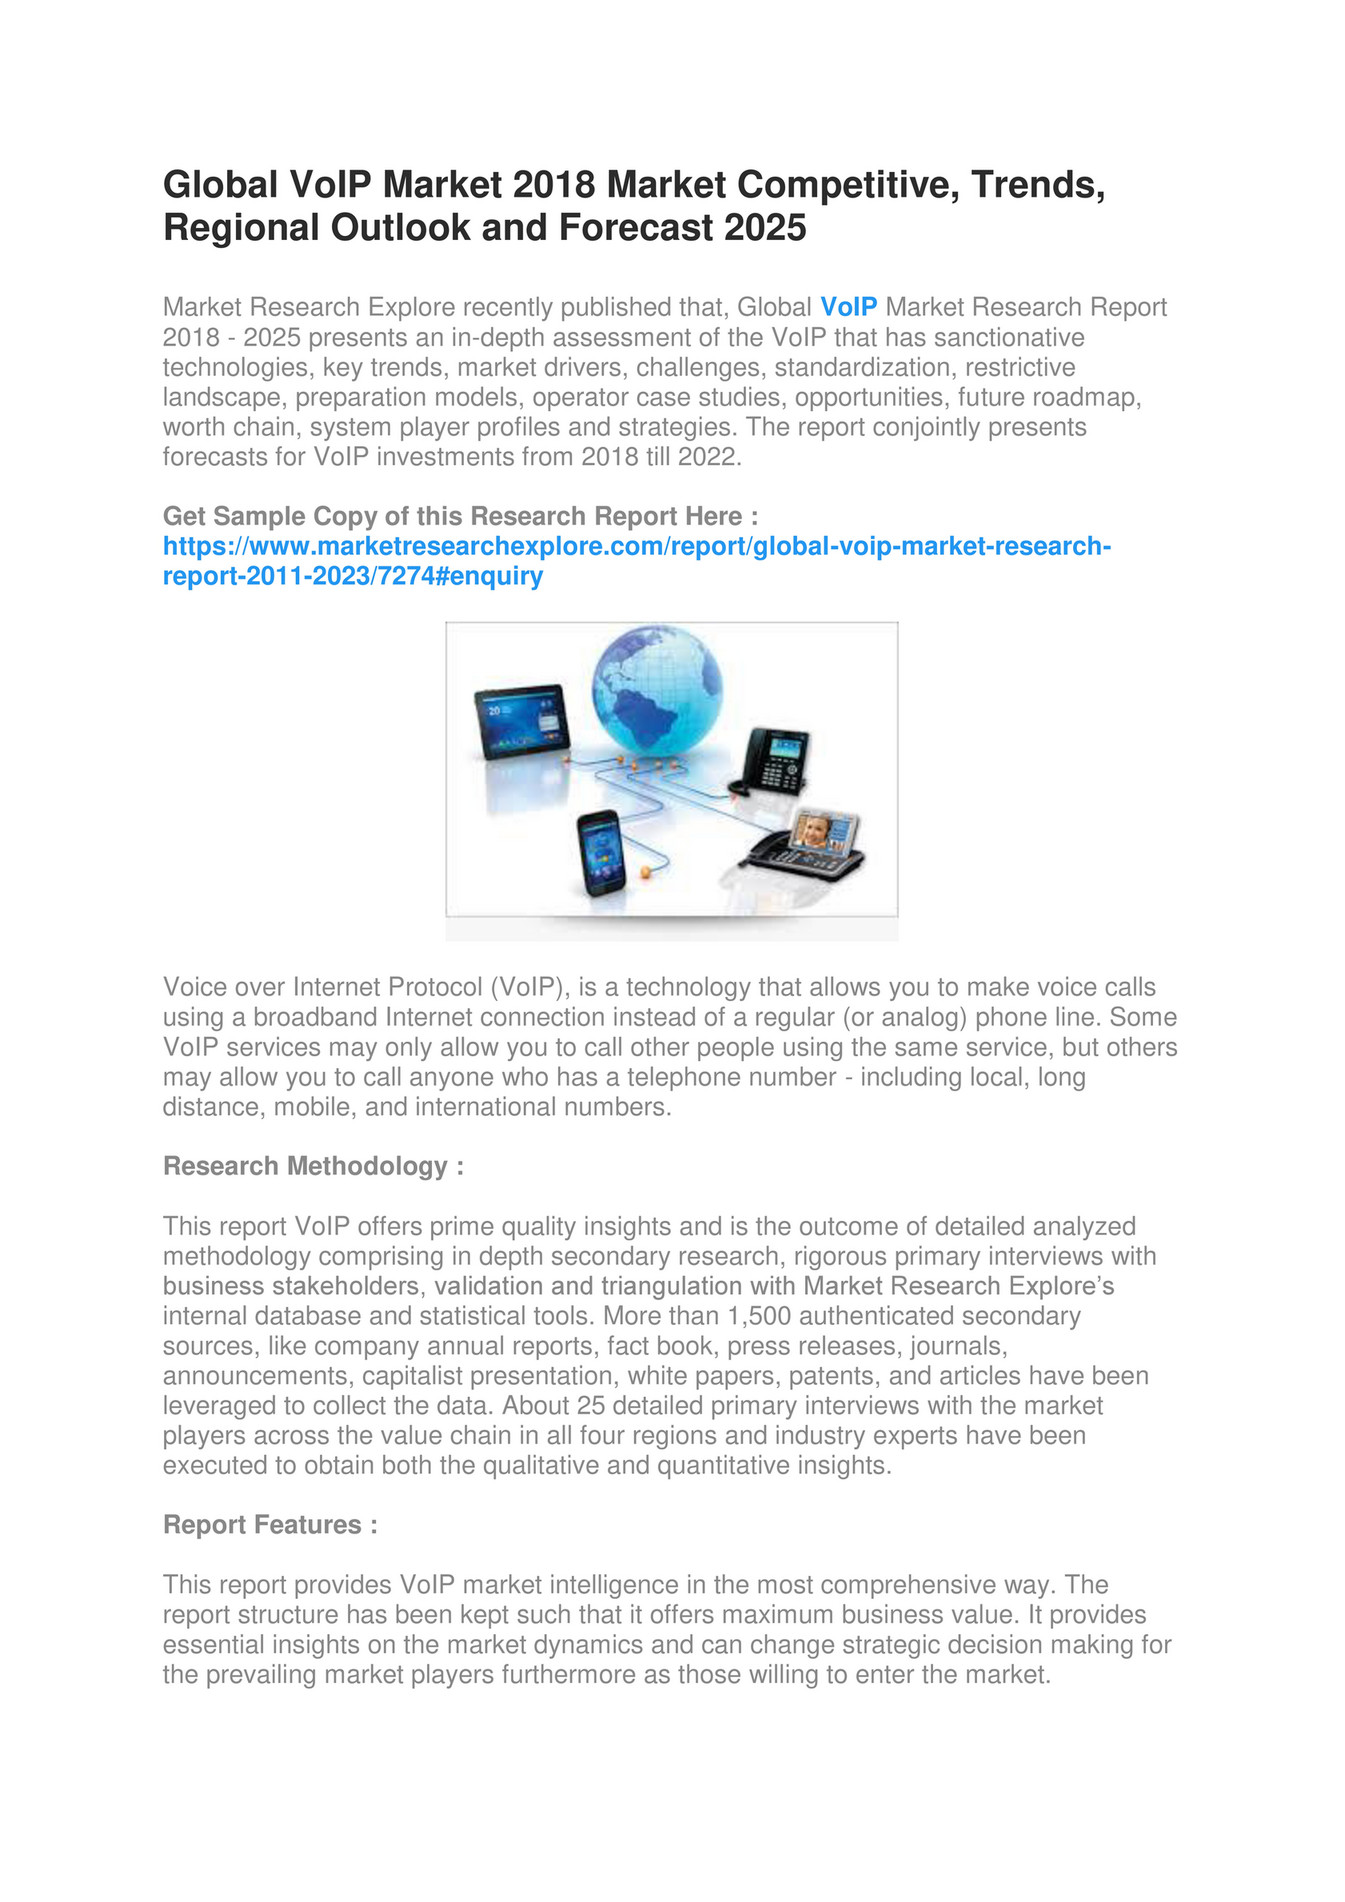 Market Research Explore - Global VoIP Market 2018 - Page 1